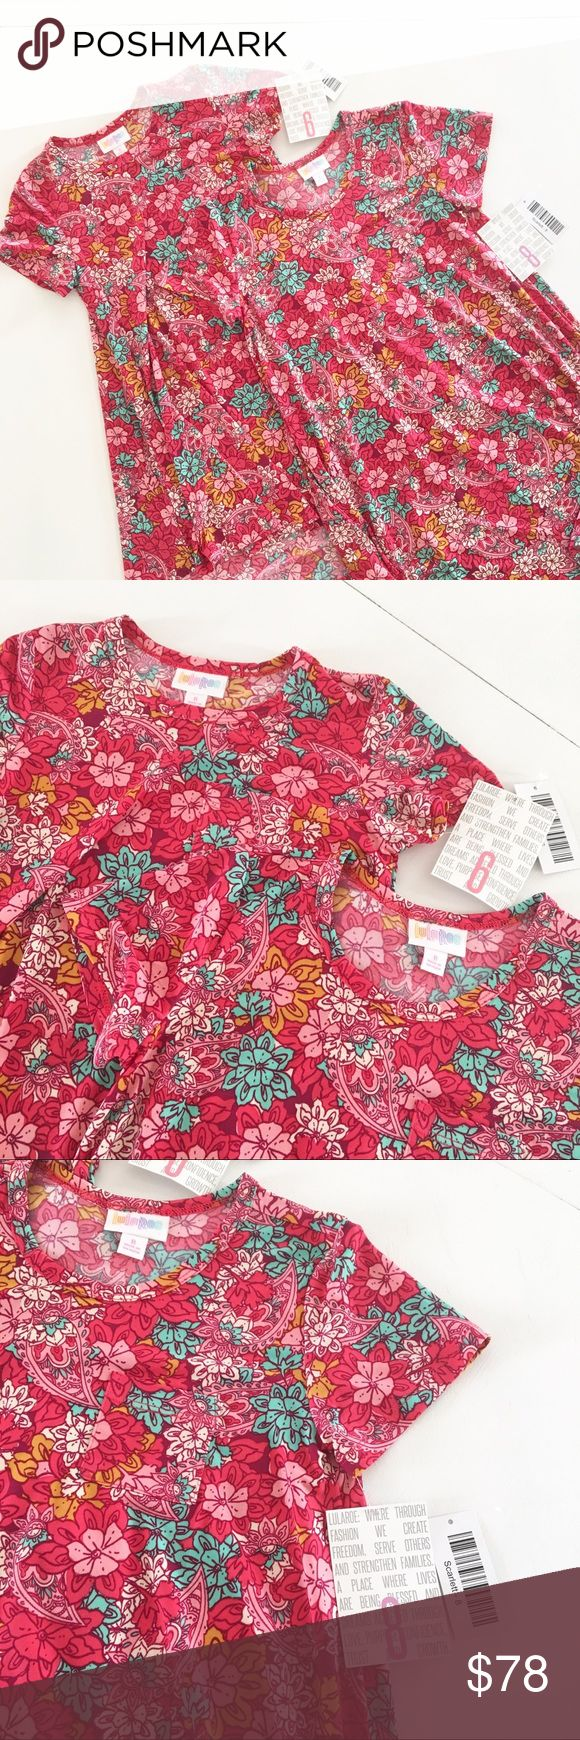 ♥️ LuLaRoe Sister Set of Scarlett Dresses {SET of TWO} Matching LuLaRoe Scarlett Dresses in Sizes 6 and 8.  Poppy pink, turquoise, and vivid orange give this swinging dress lots of punch! Splendid for barefoot seaside strolls, as a swim coverup at all the pool parties, and instagram-worthy photo shoots! New with tags. LuLaRoe Dresses